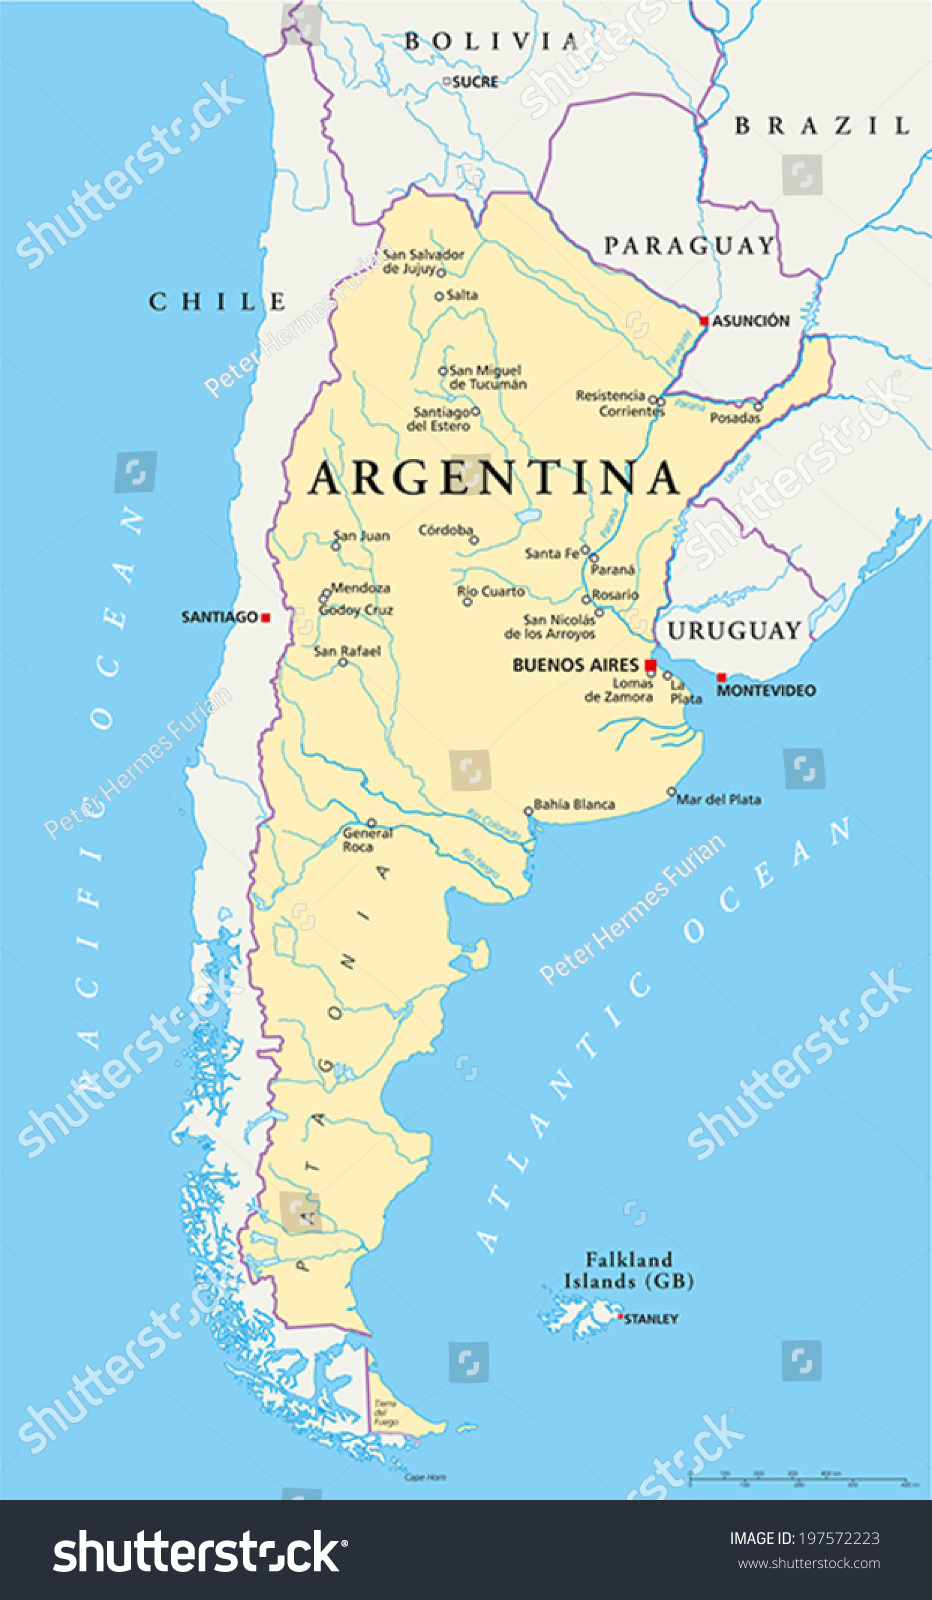 Argentina Political Map Capital Buenos Aires Stock Vector - Argentina cities map